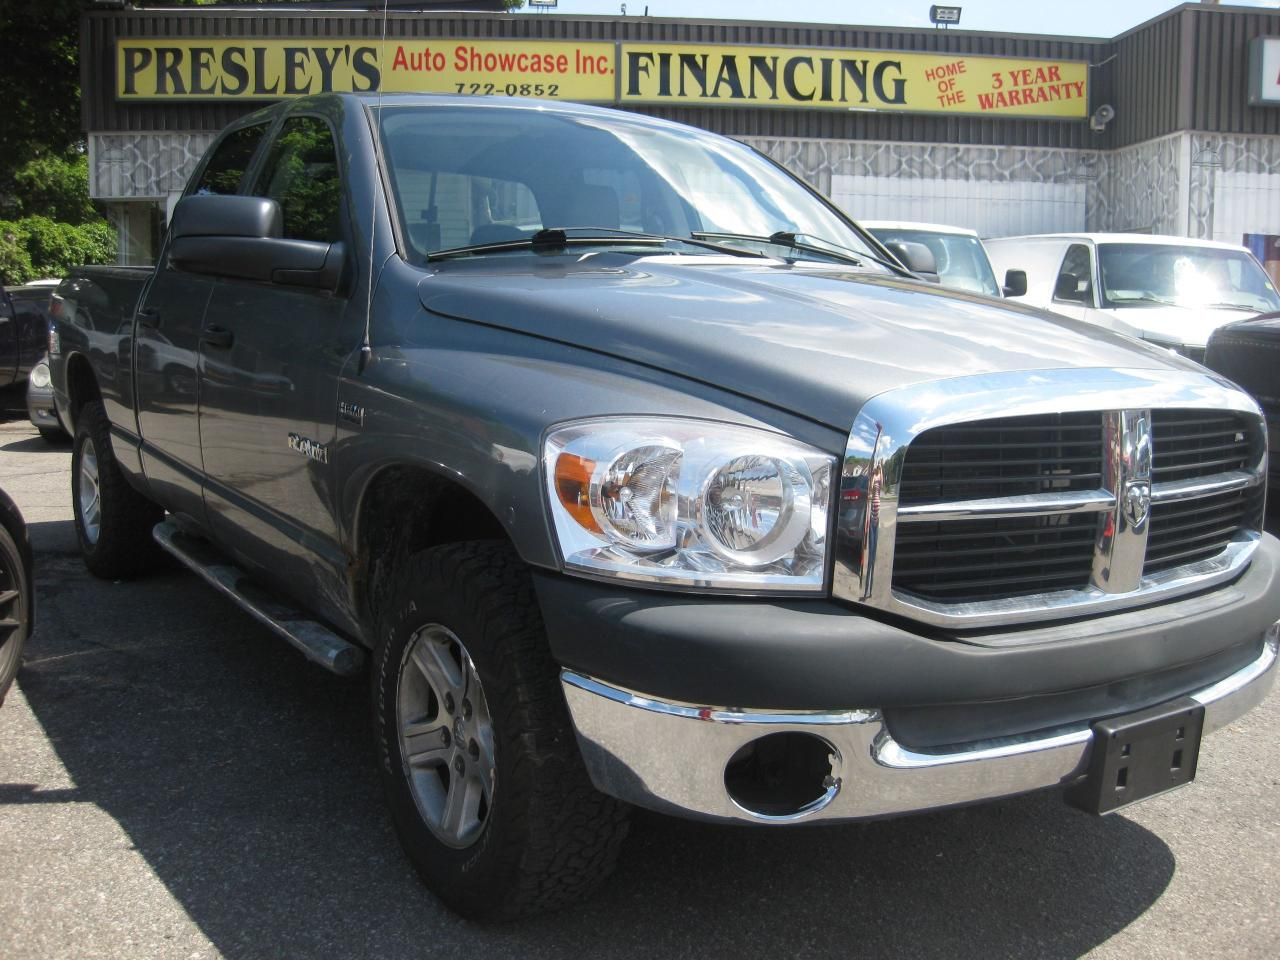 medium resolution of used 2008 dodge ram 1500 crew cab 5 7l 8cyl 4x4 ac 6pass cruise pl pw for sale in ottawa ontario carpages ca